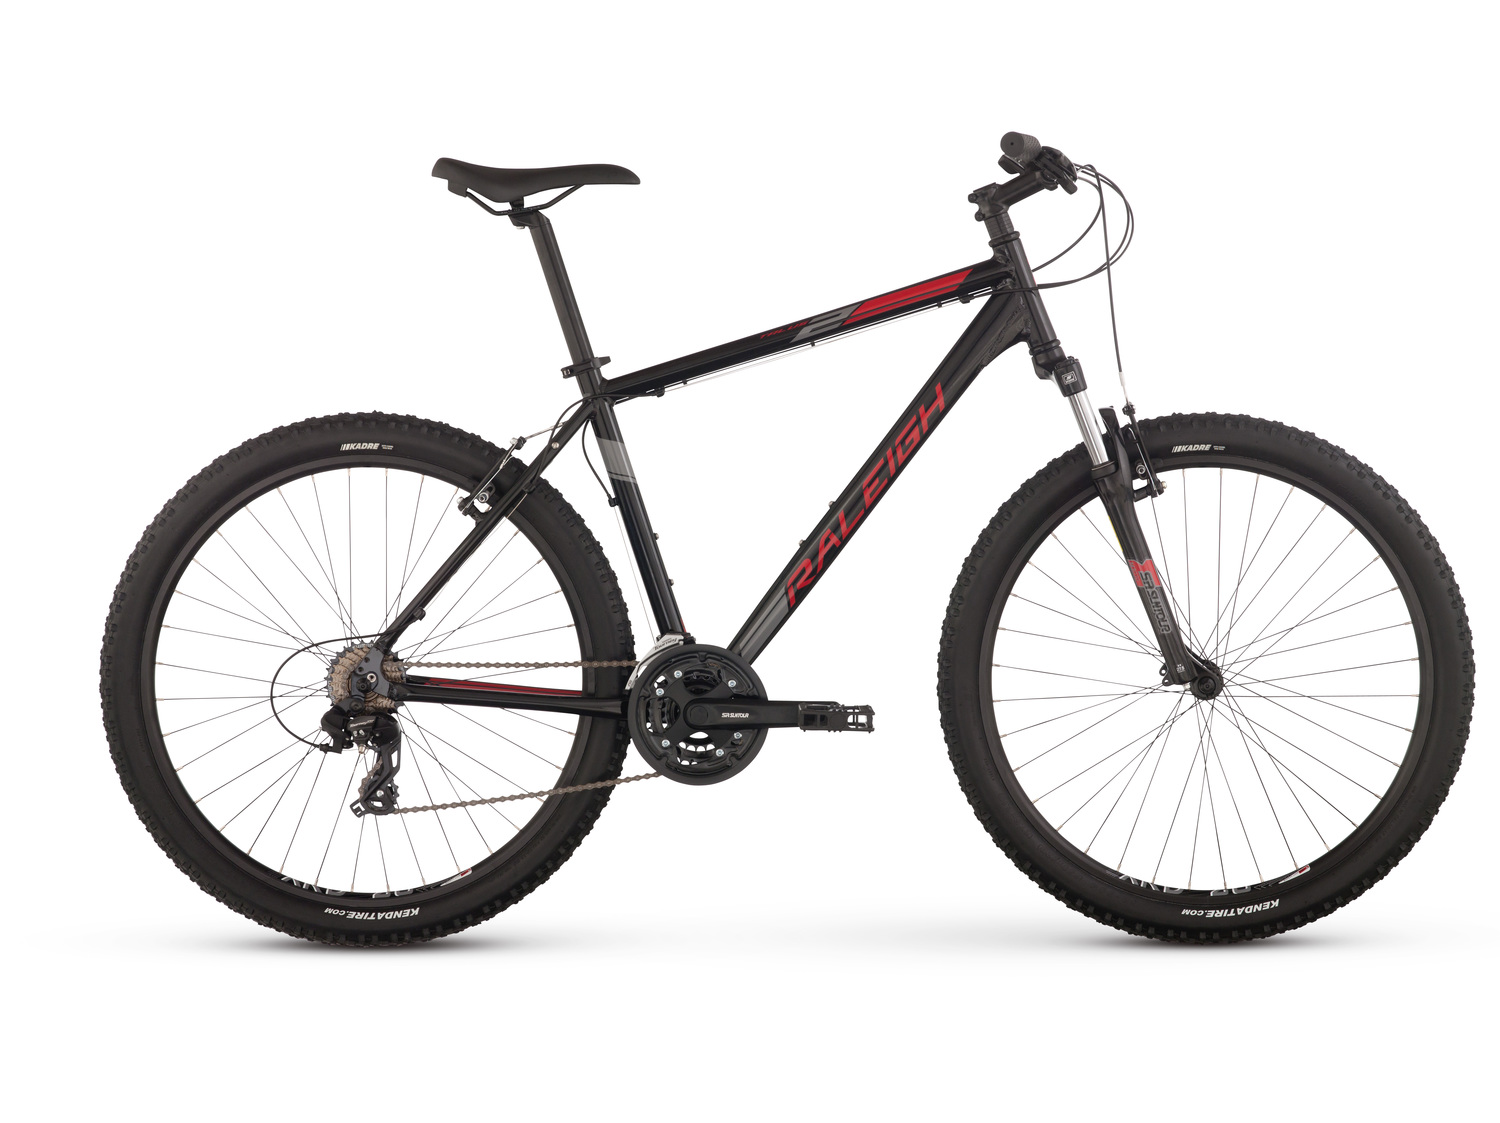 New 2017 Raleigh Talus 2 Complete Mountain Bike